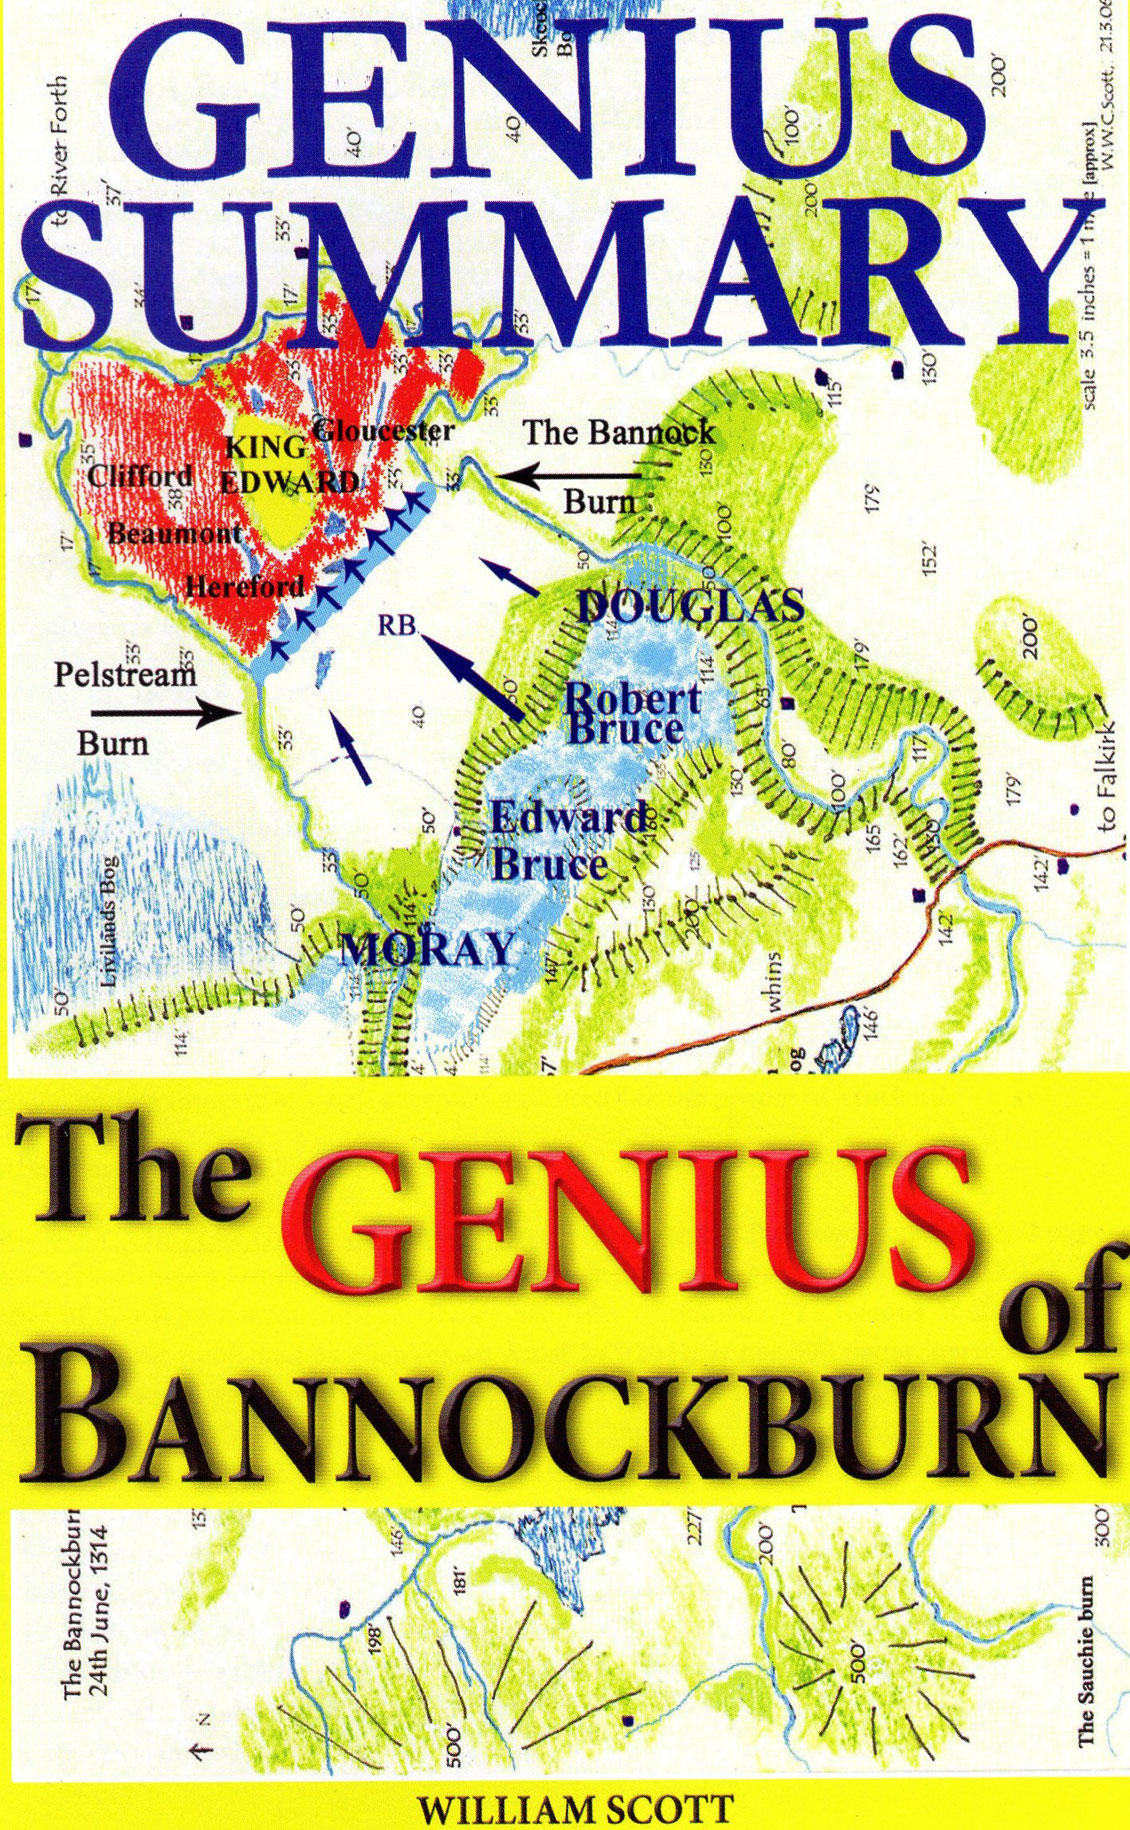 © Elenkus: The genius of Bannockburn book cover